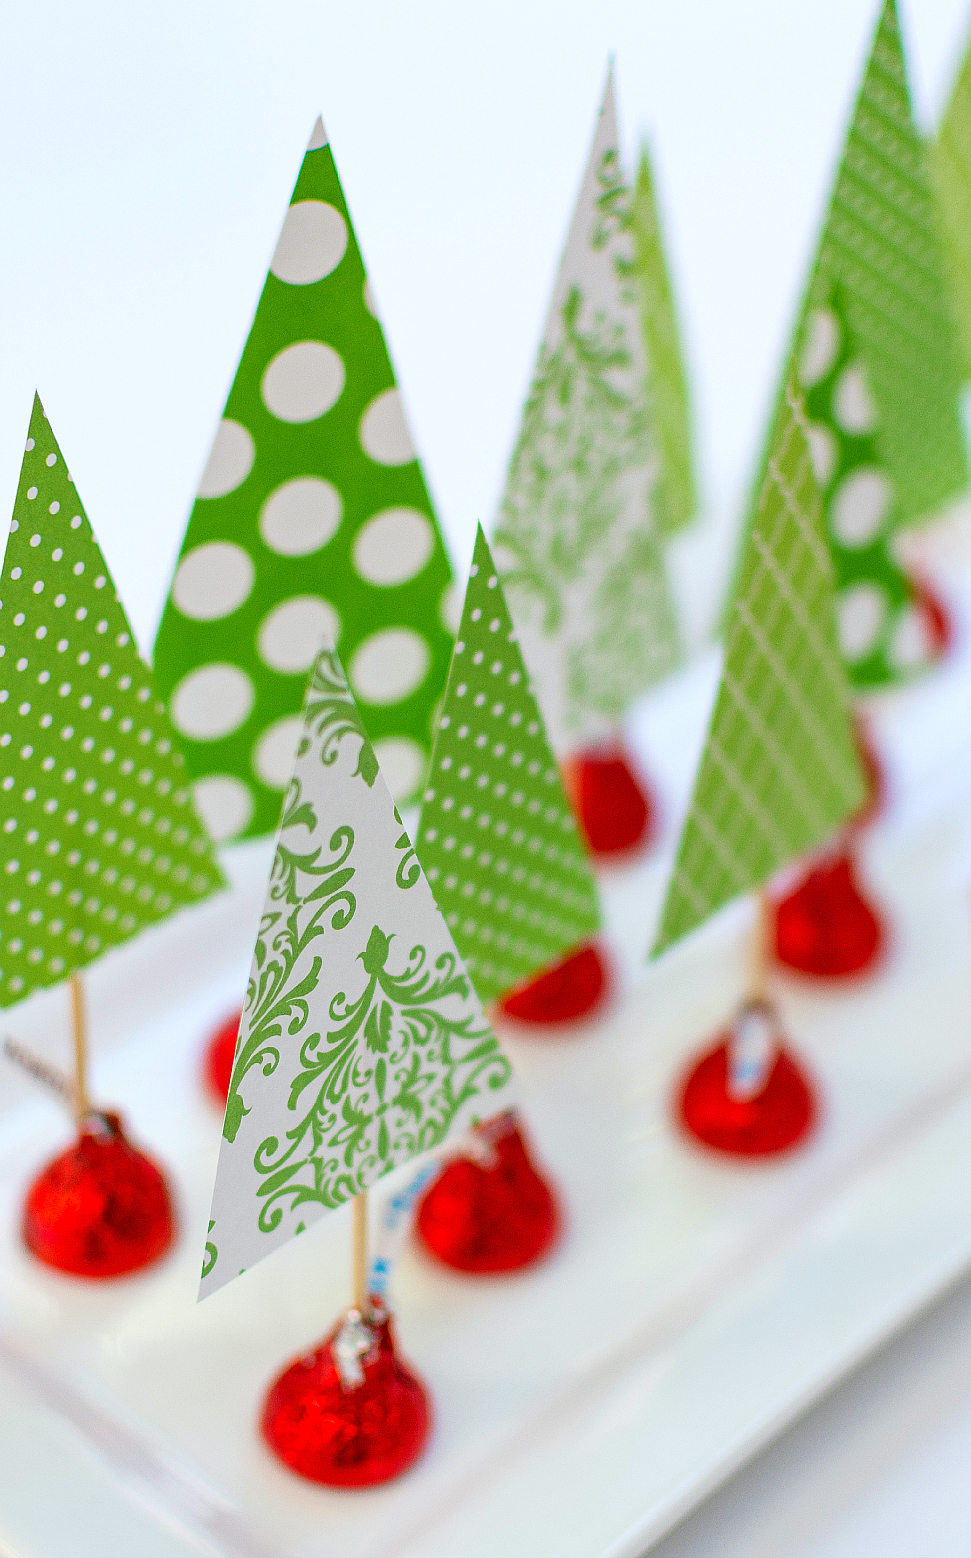 25 forest of treats - Diy Christmas Table Decorations